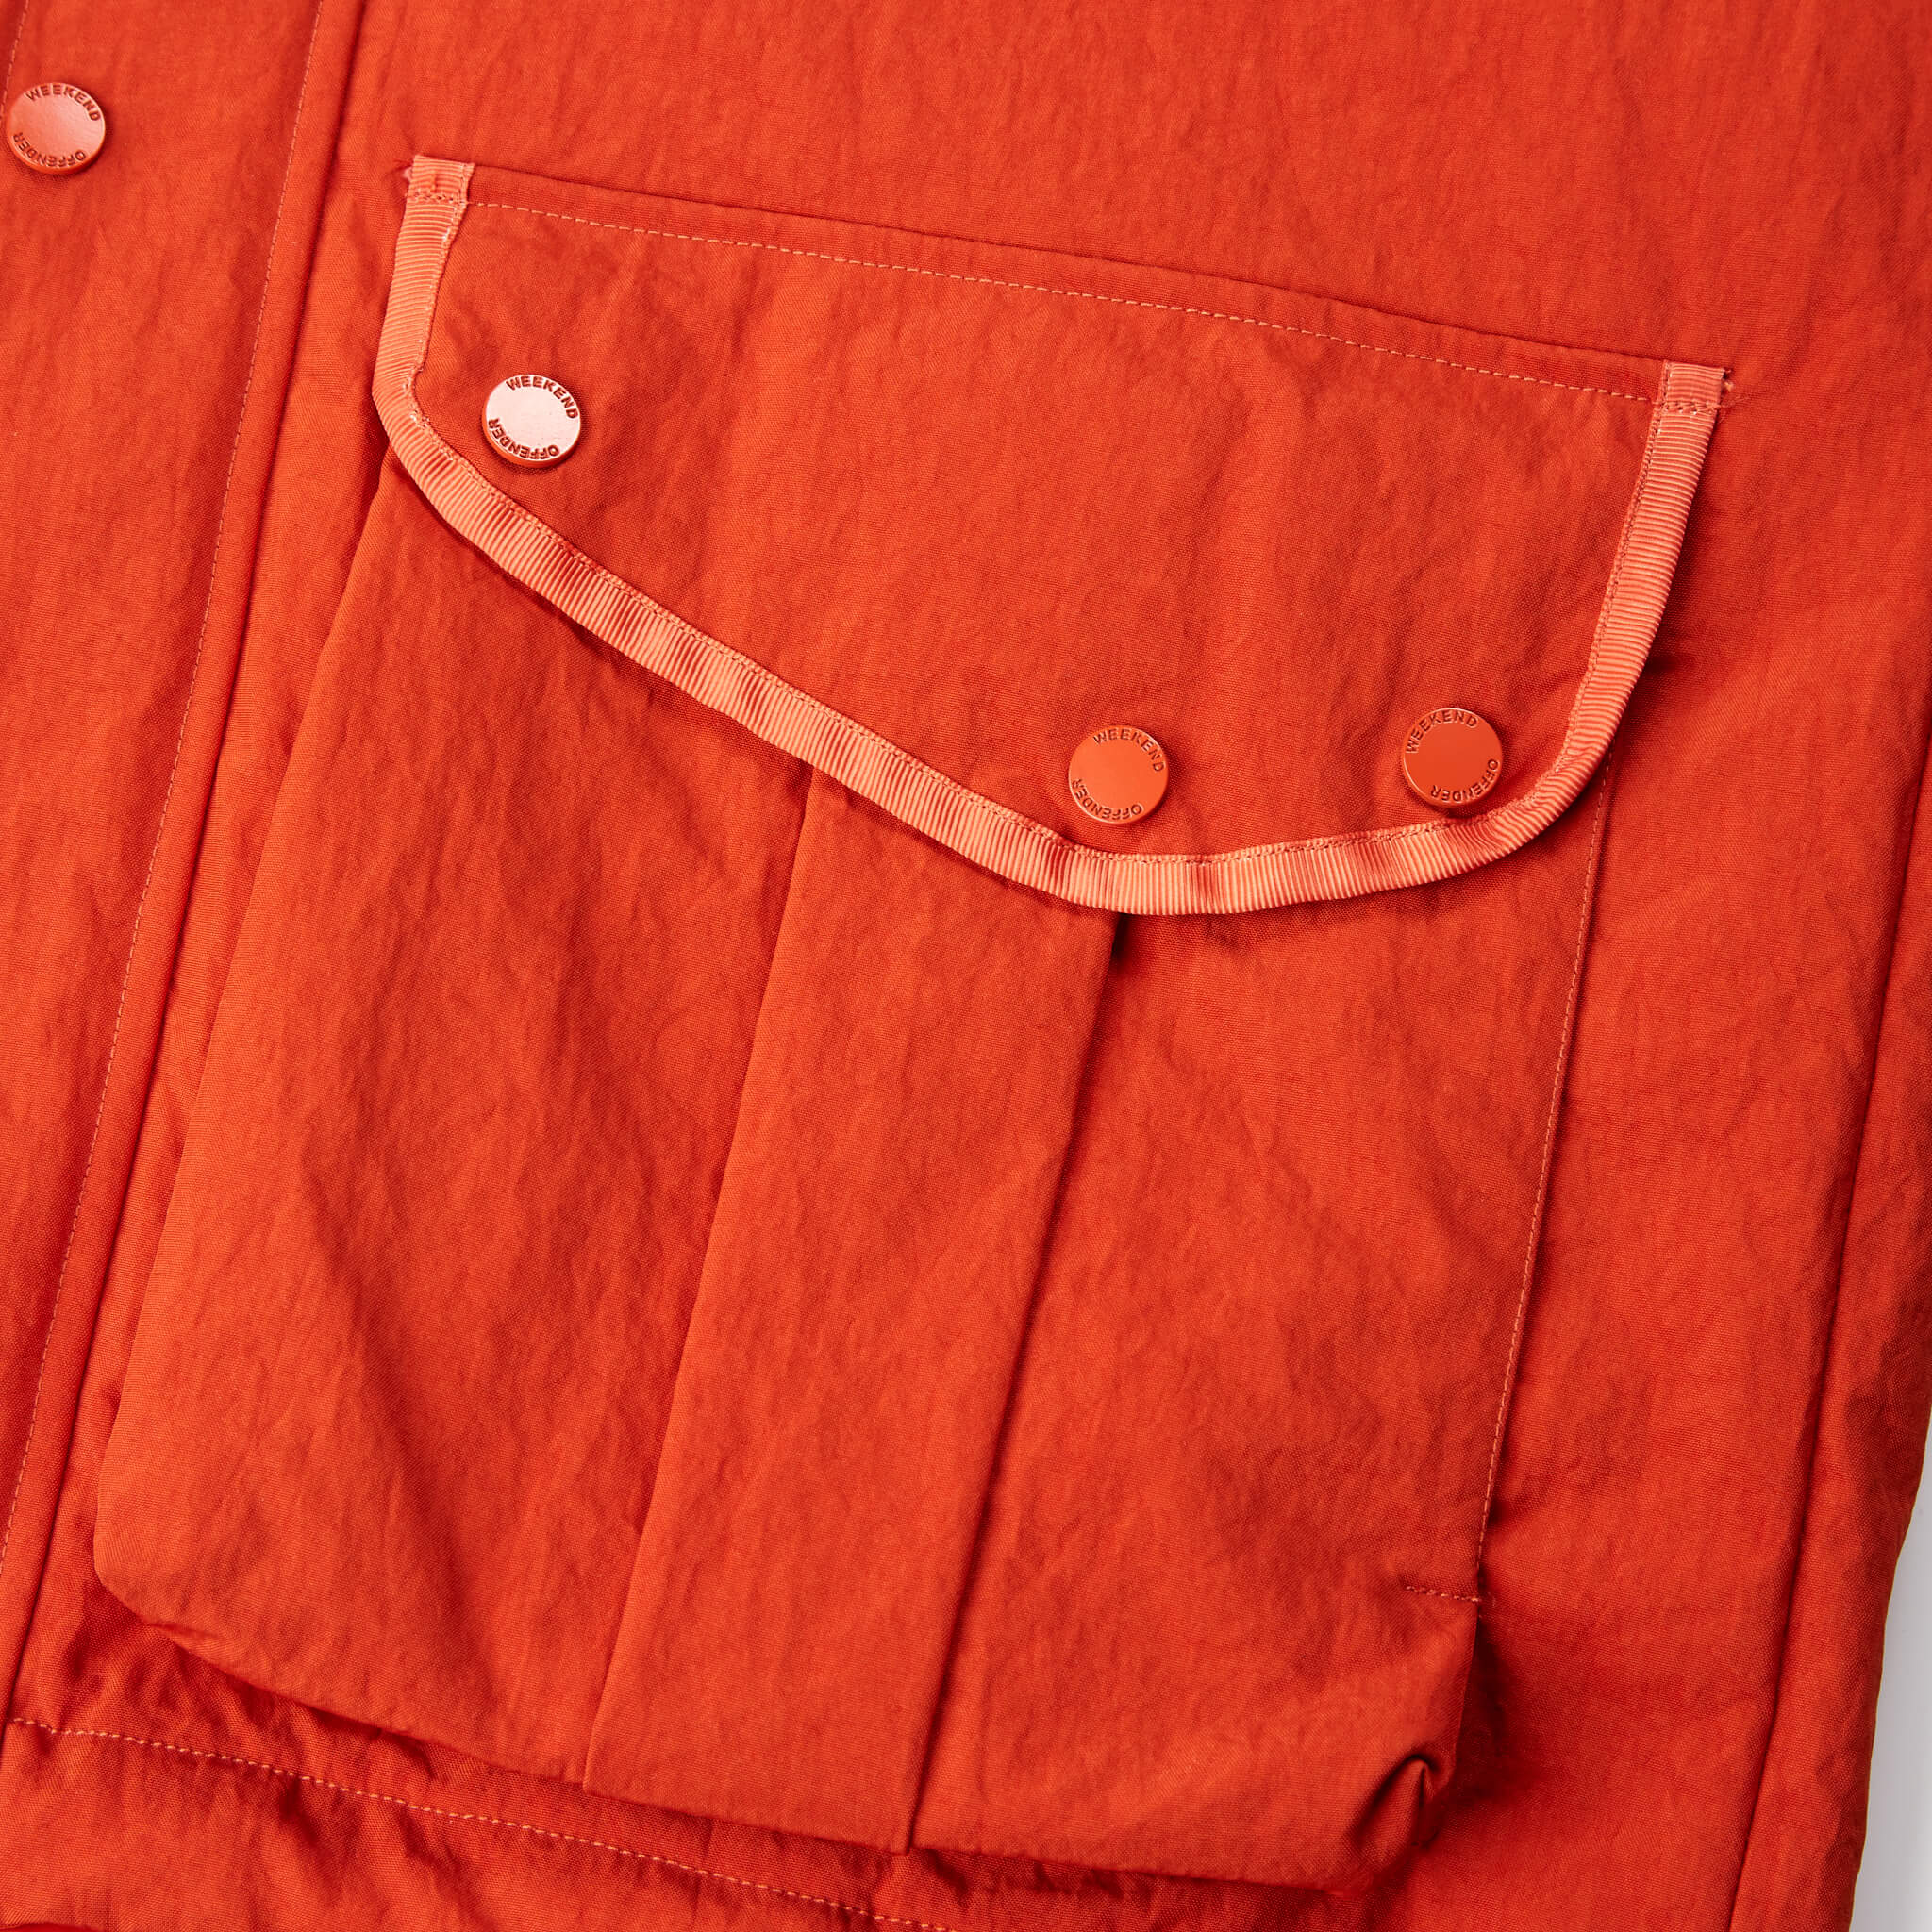 LG Signature Jacket Burnt Orange